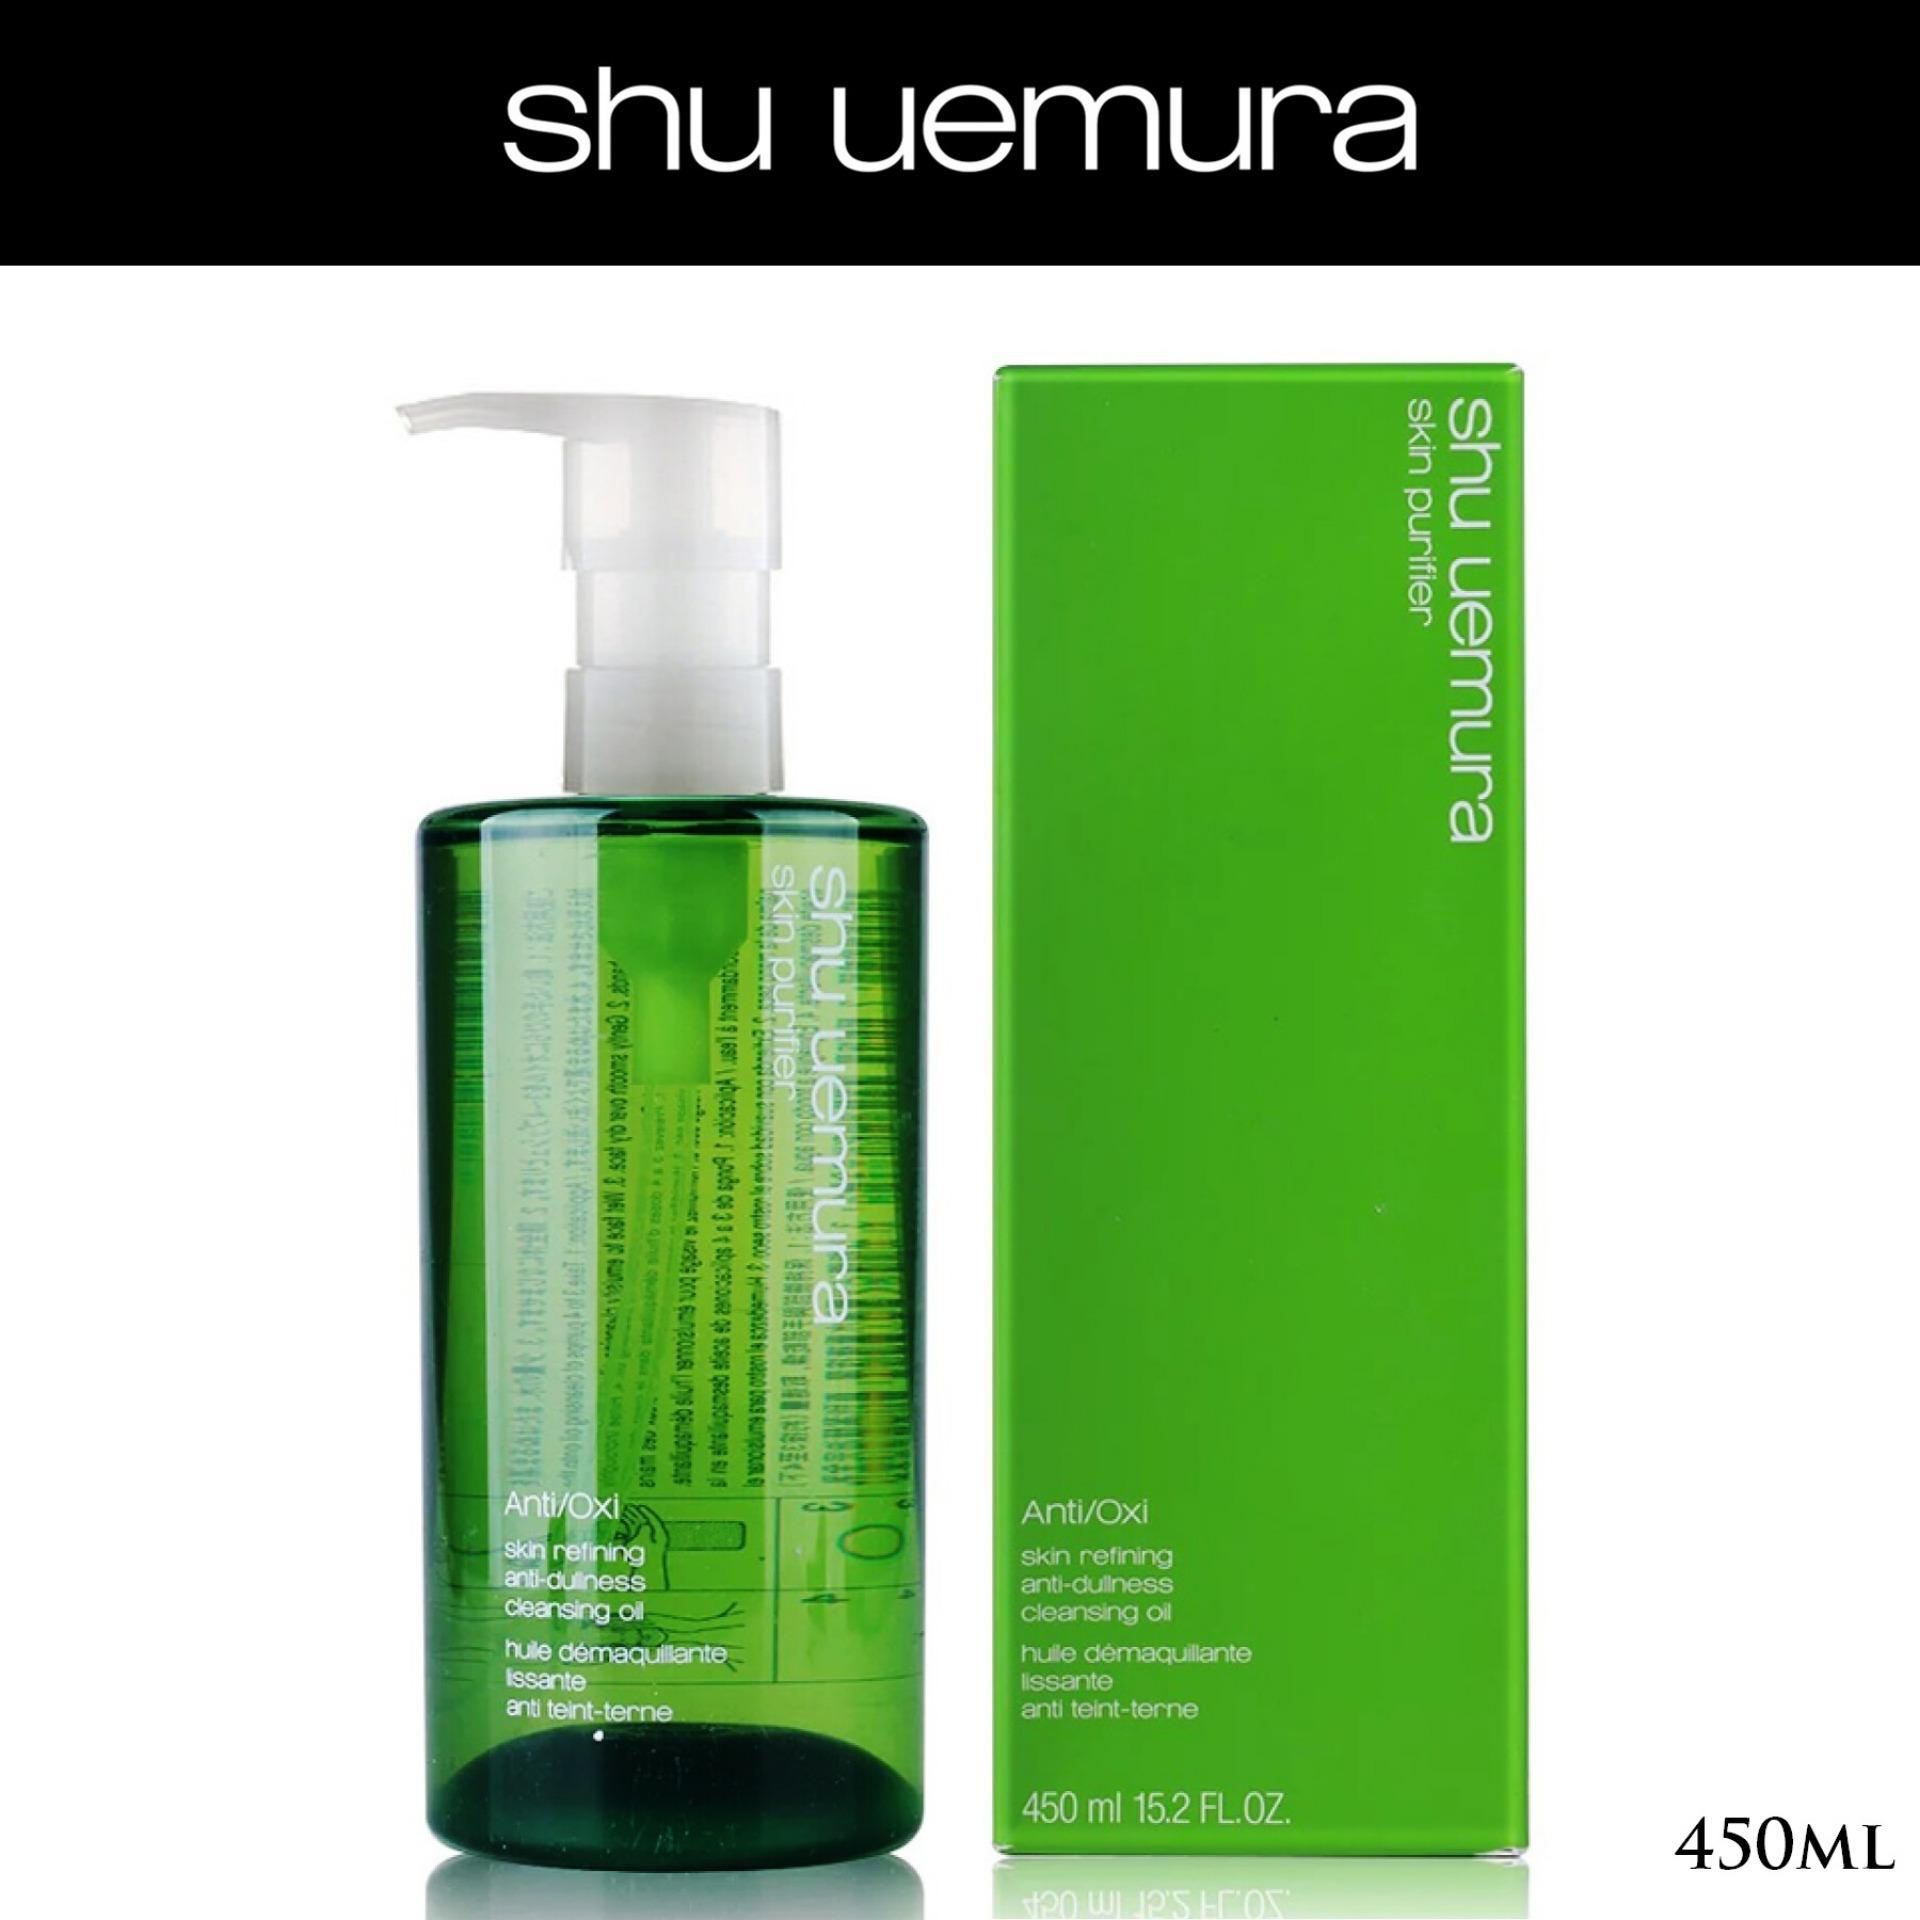 Price Shu Uemura Anti Oxi Pollutant Dullness Clarifying Cleansing Oil 450Ml Hong Kong Sar China